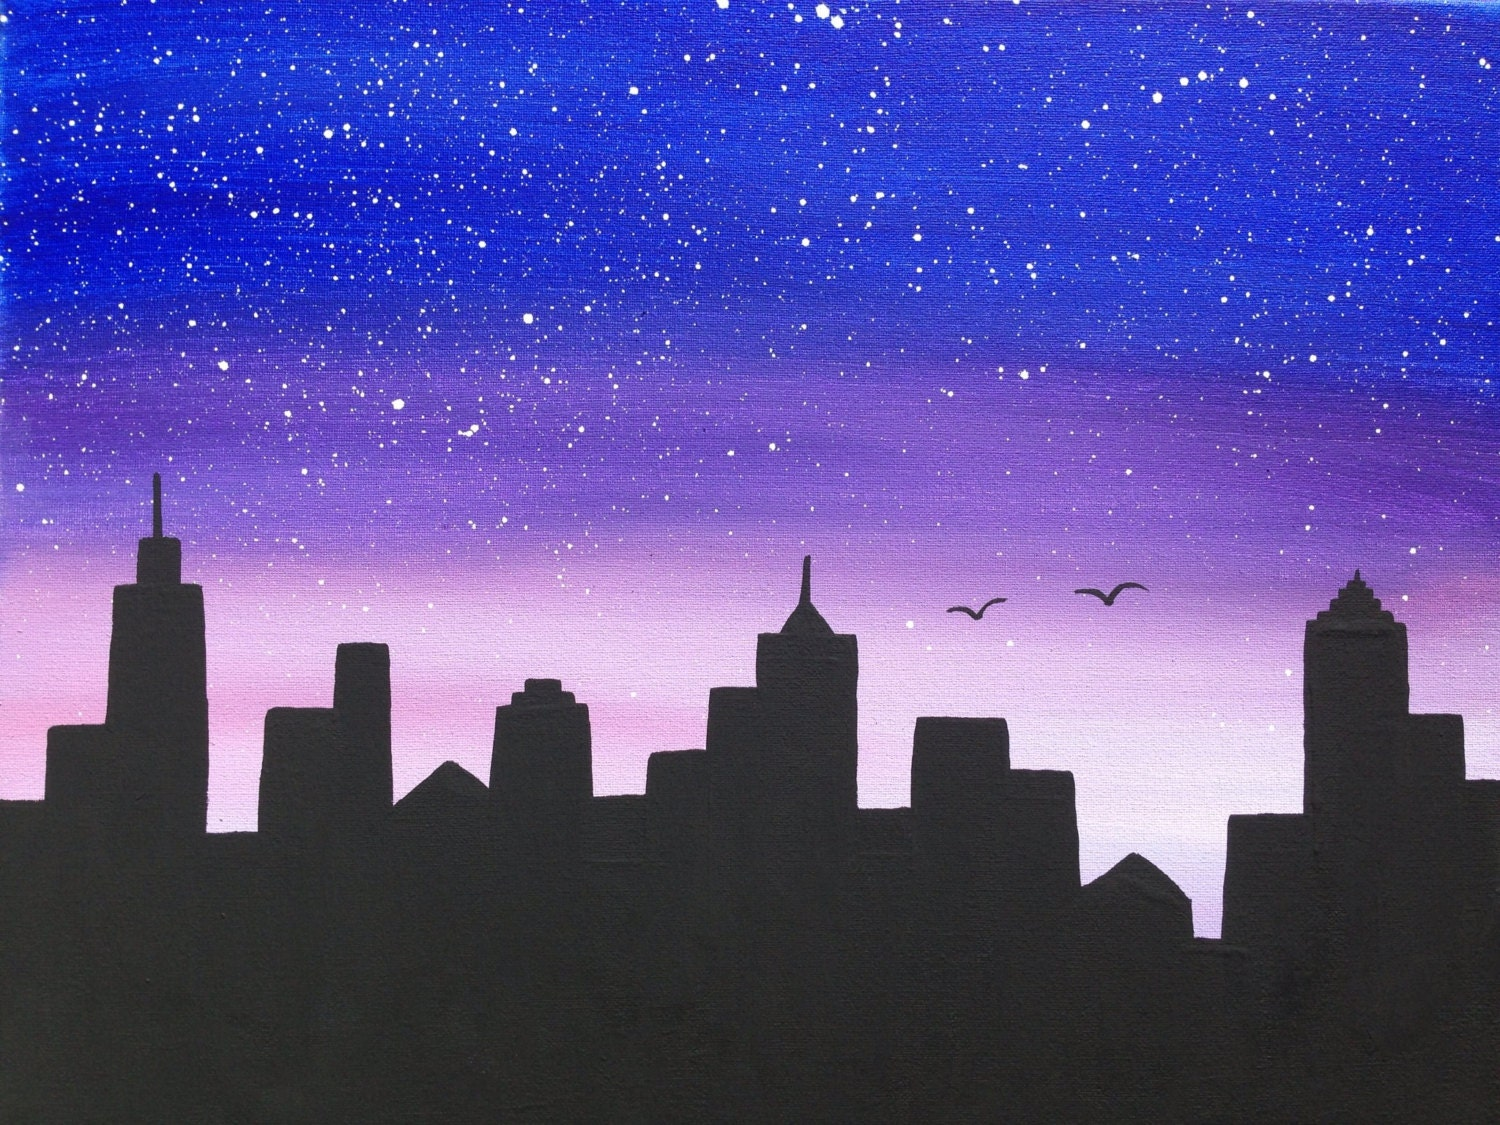 Cityscapenight scenesilhouette16x20black paintingblue